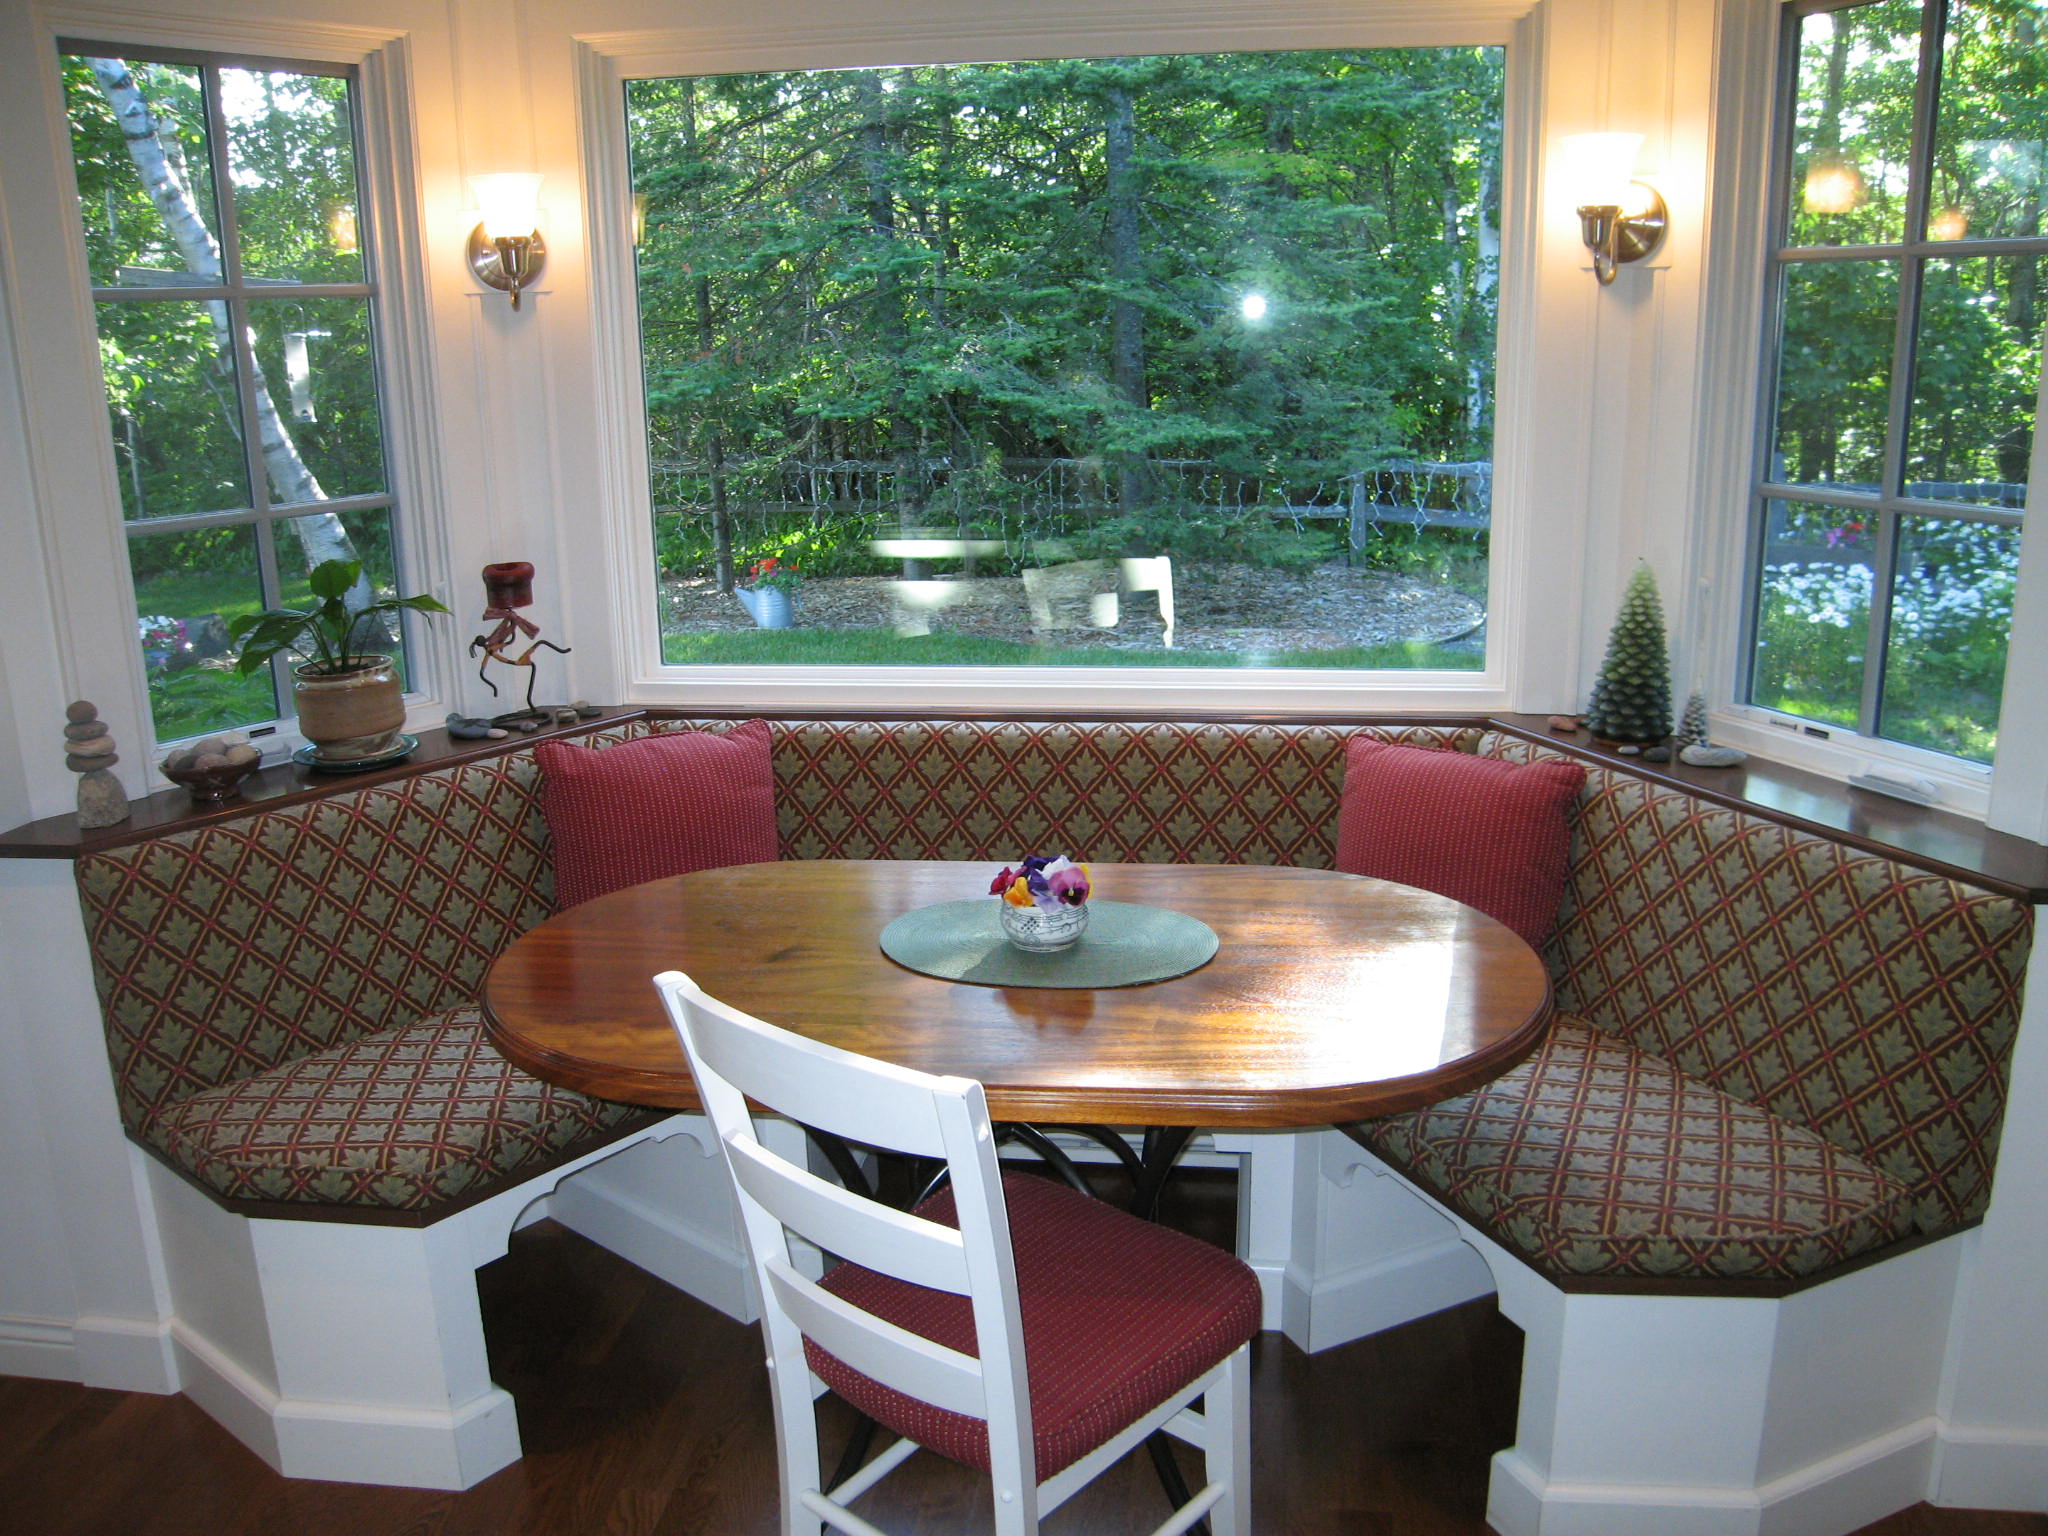 Banquette seating maximize family togetherness in the kitchen